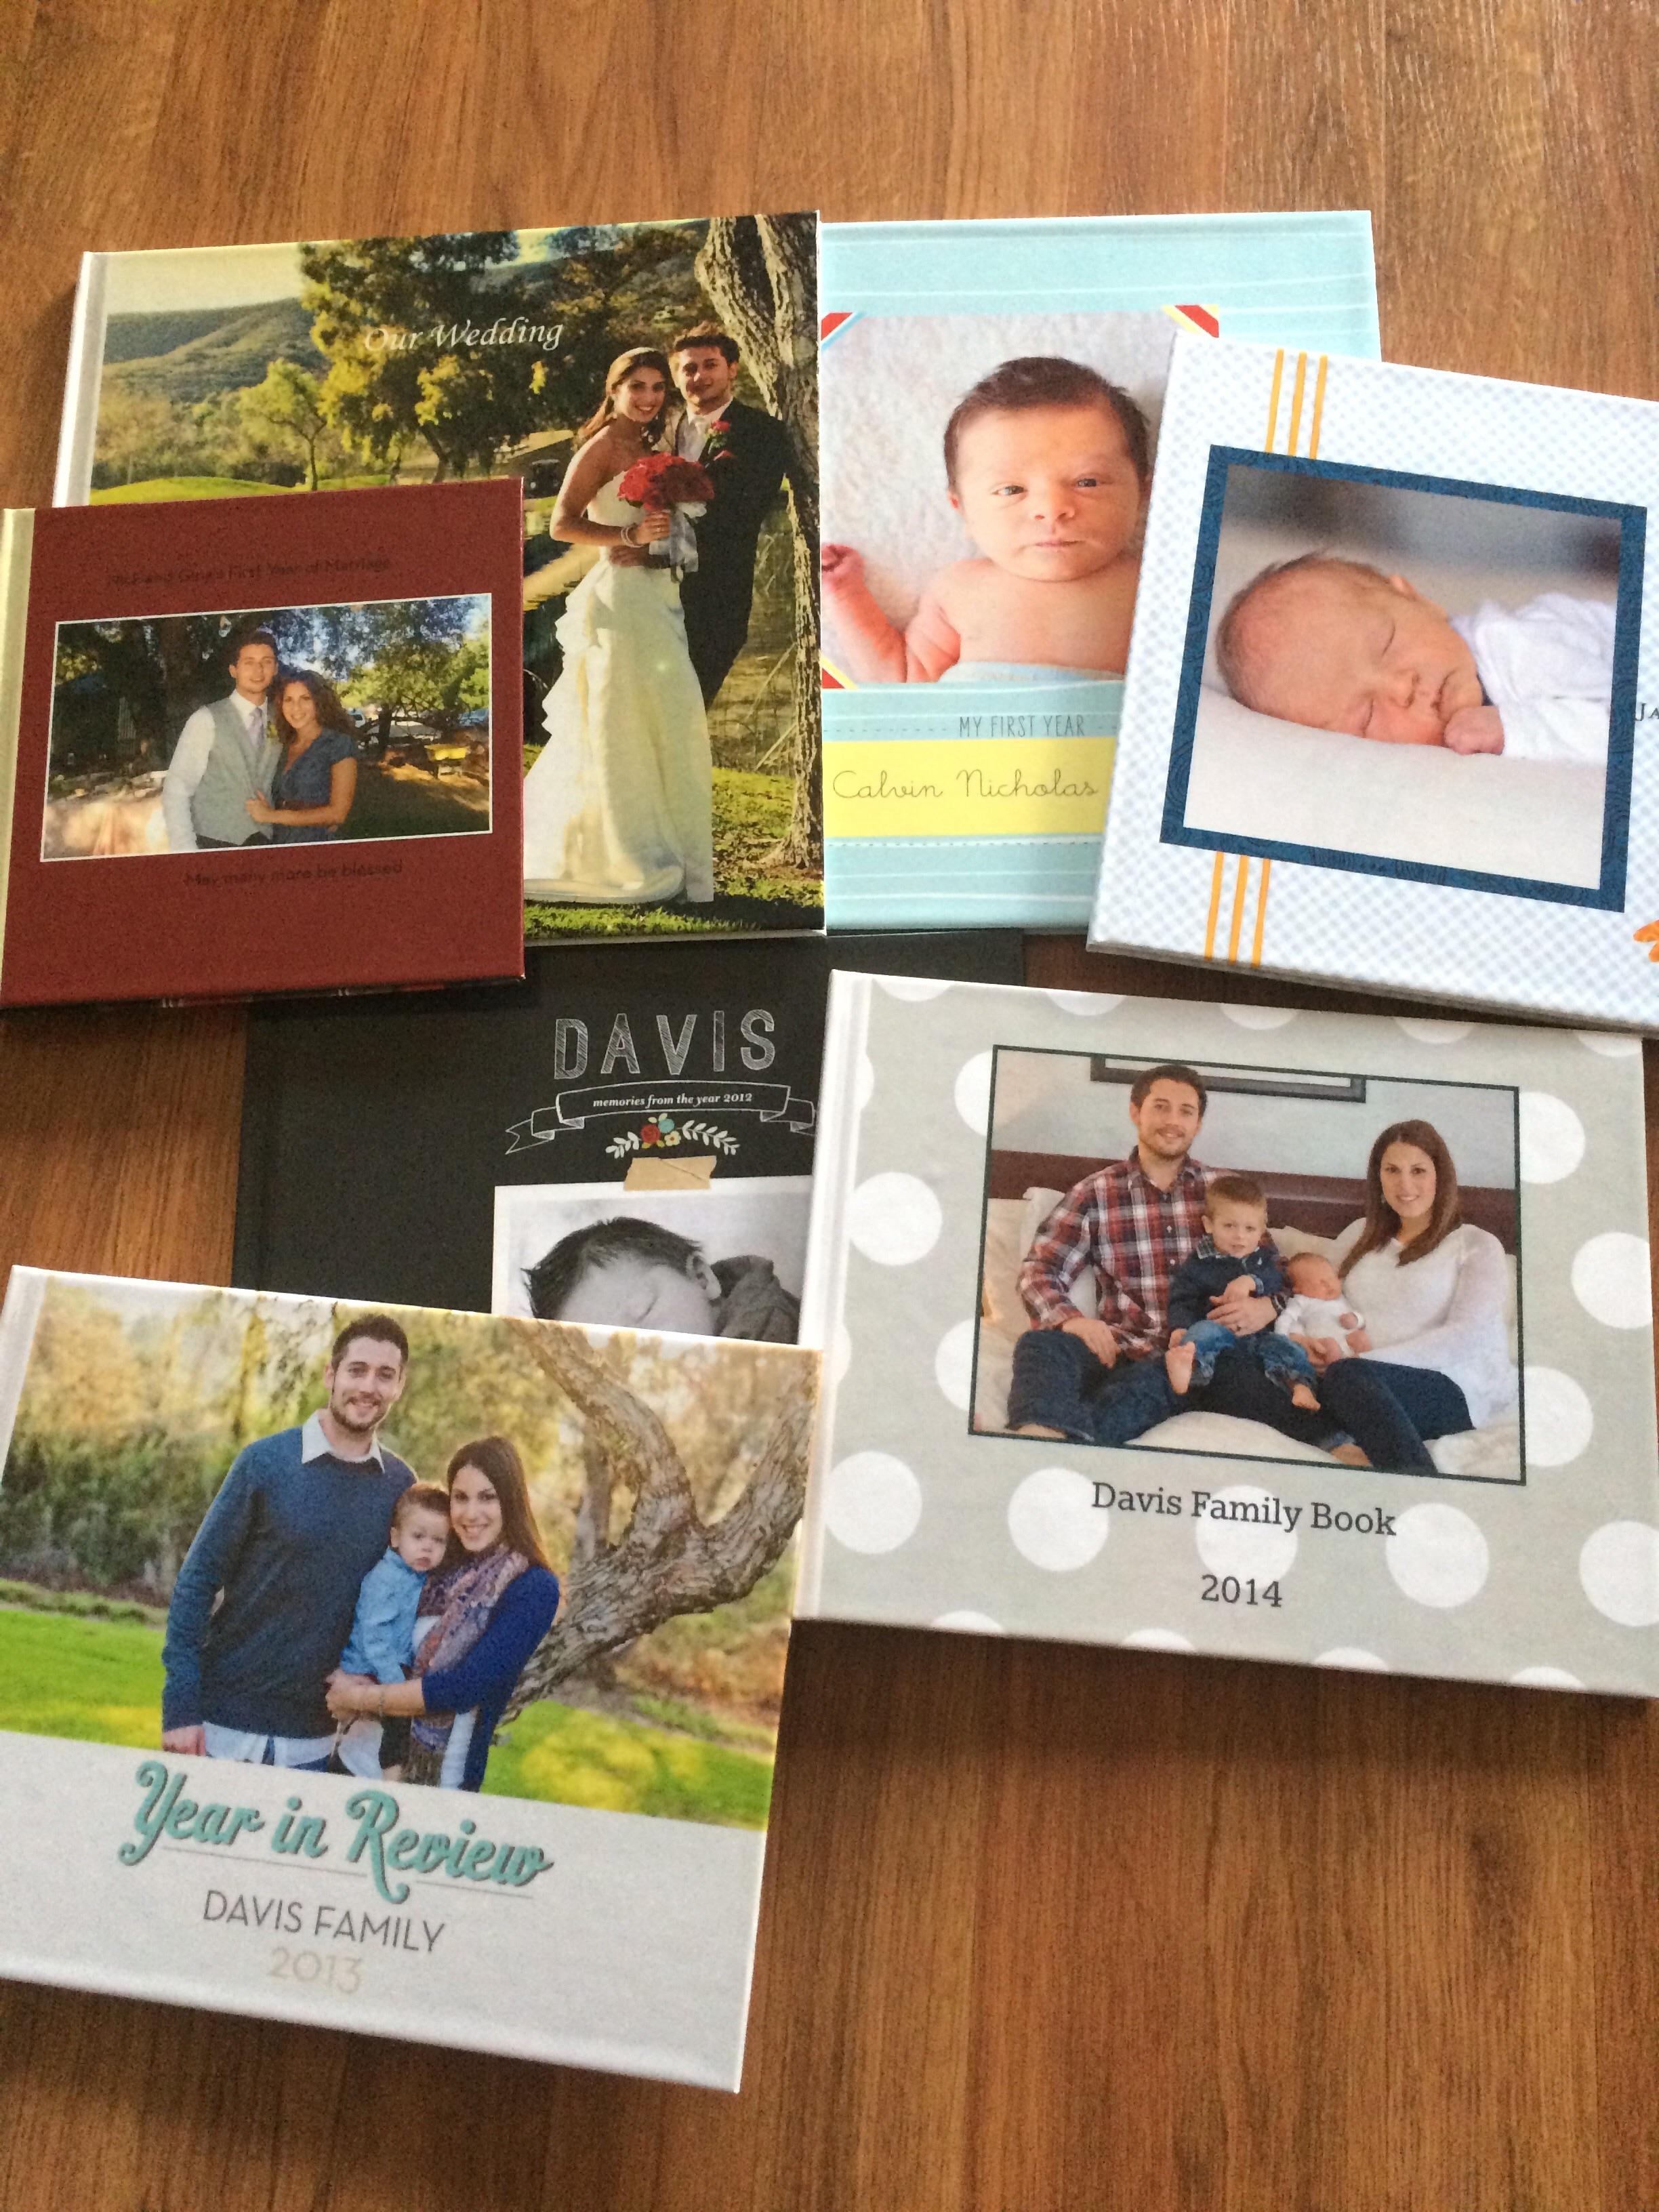 Some of our current books. I have our 2015 Family Book almost ready but am waiting for some good coupons before buying it.